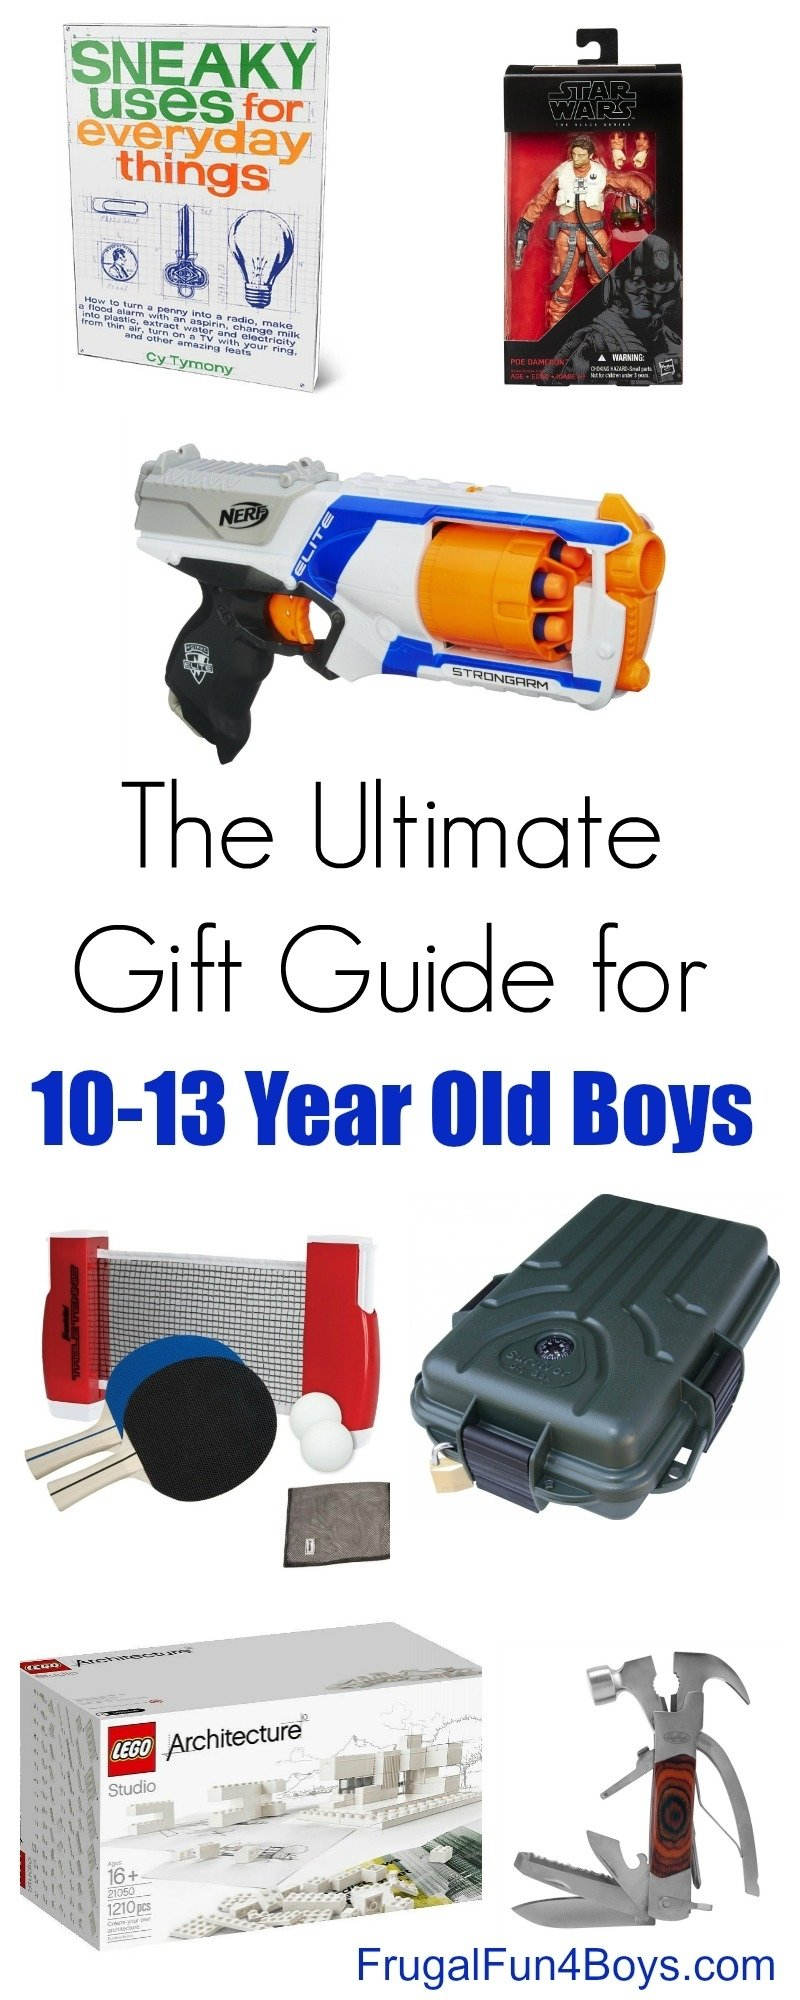 10 Most Recommended 11 Year Old Boy Birthday Gift Ideas gift ideas for 10 to 13 year old boys 38